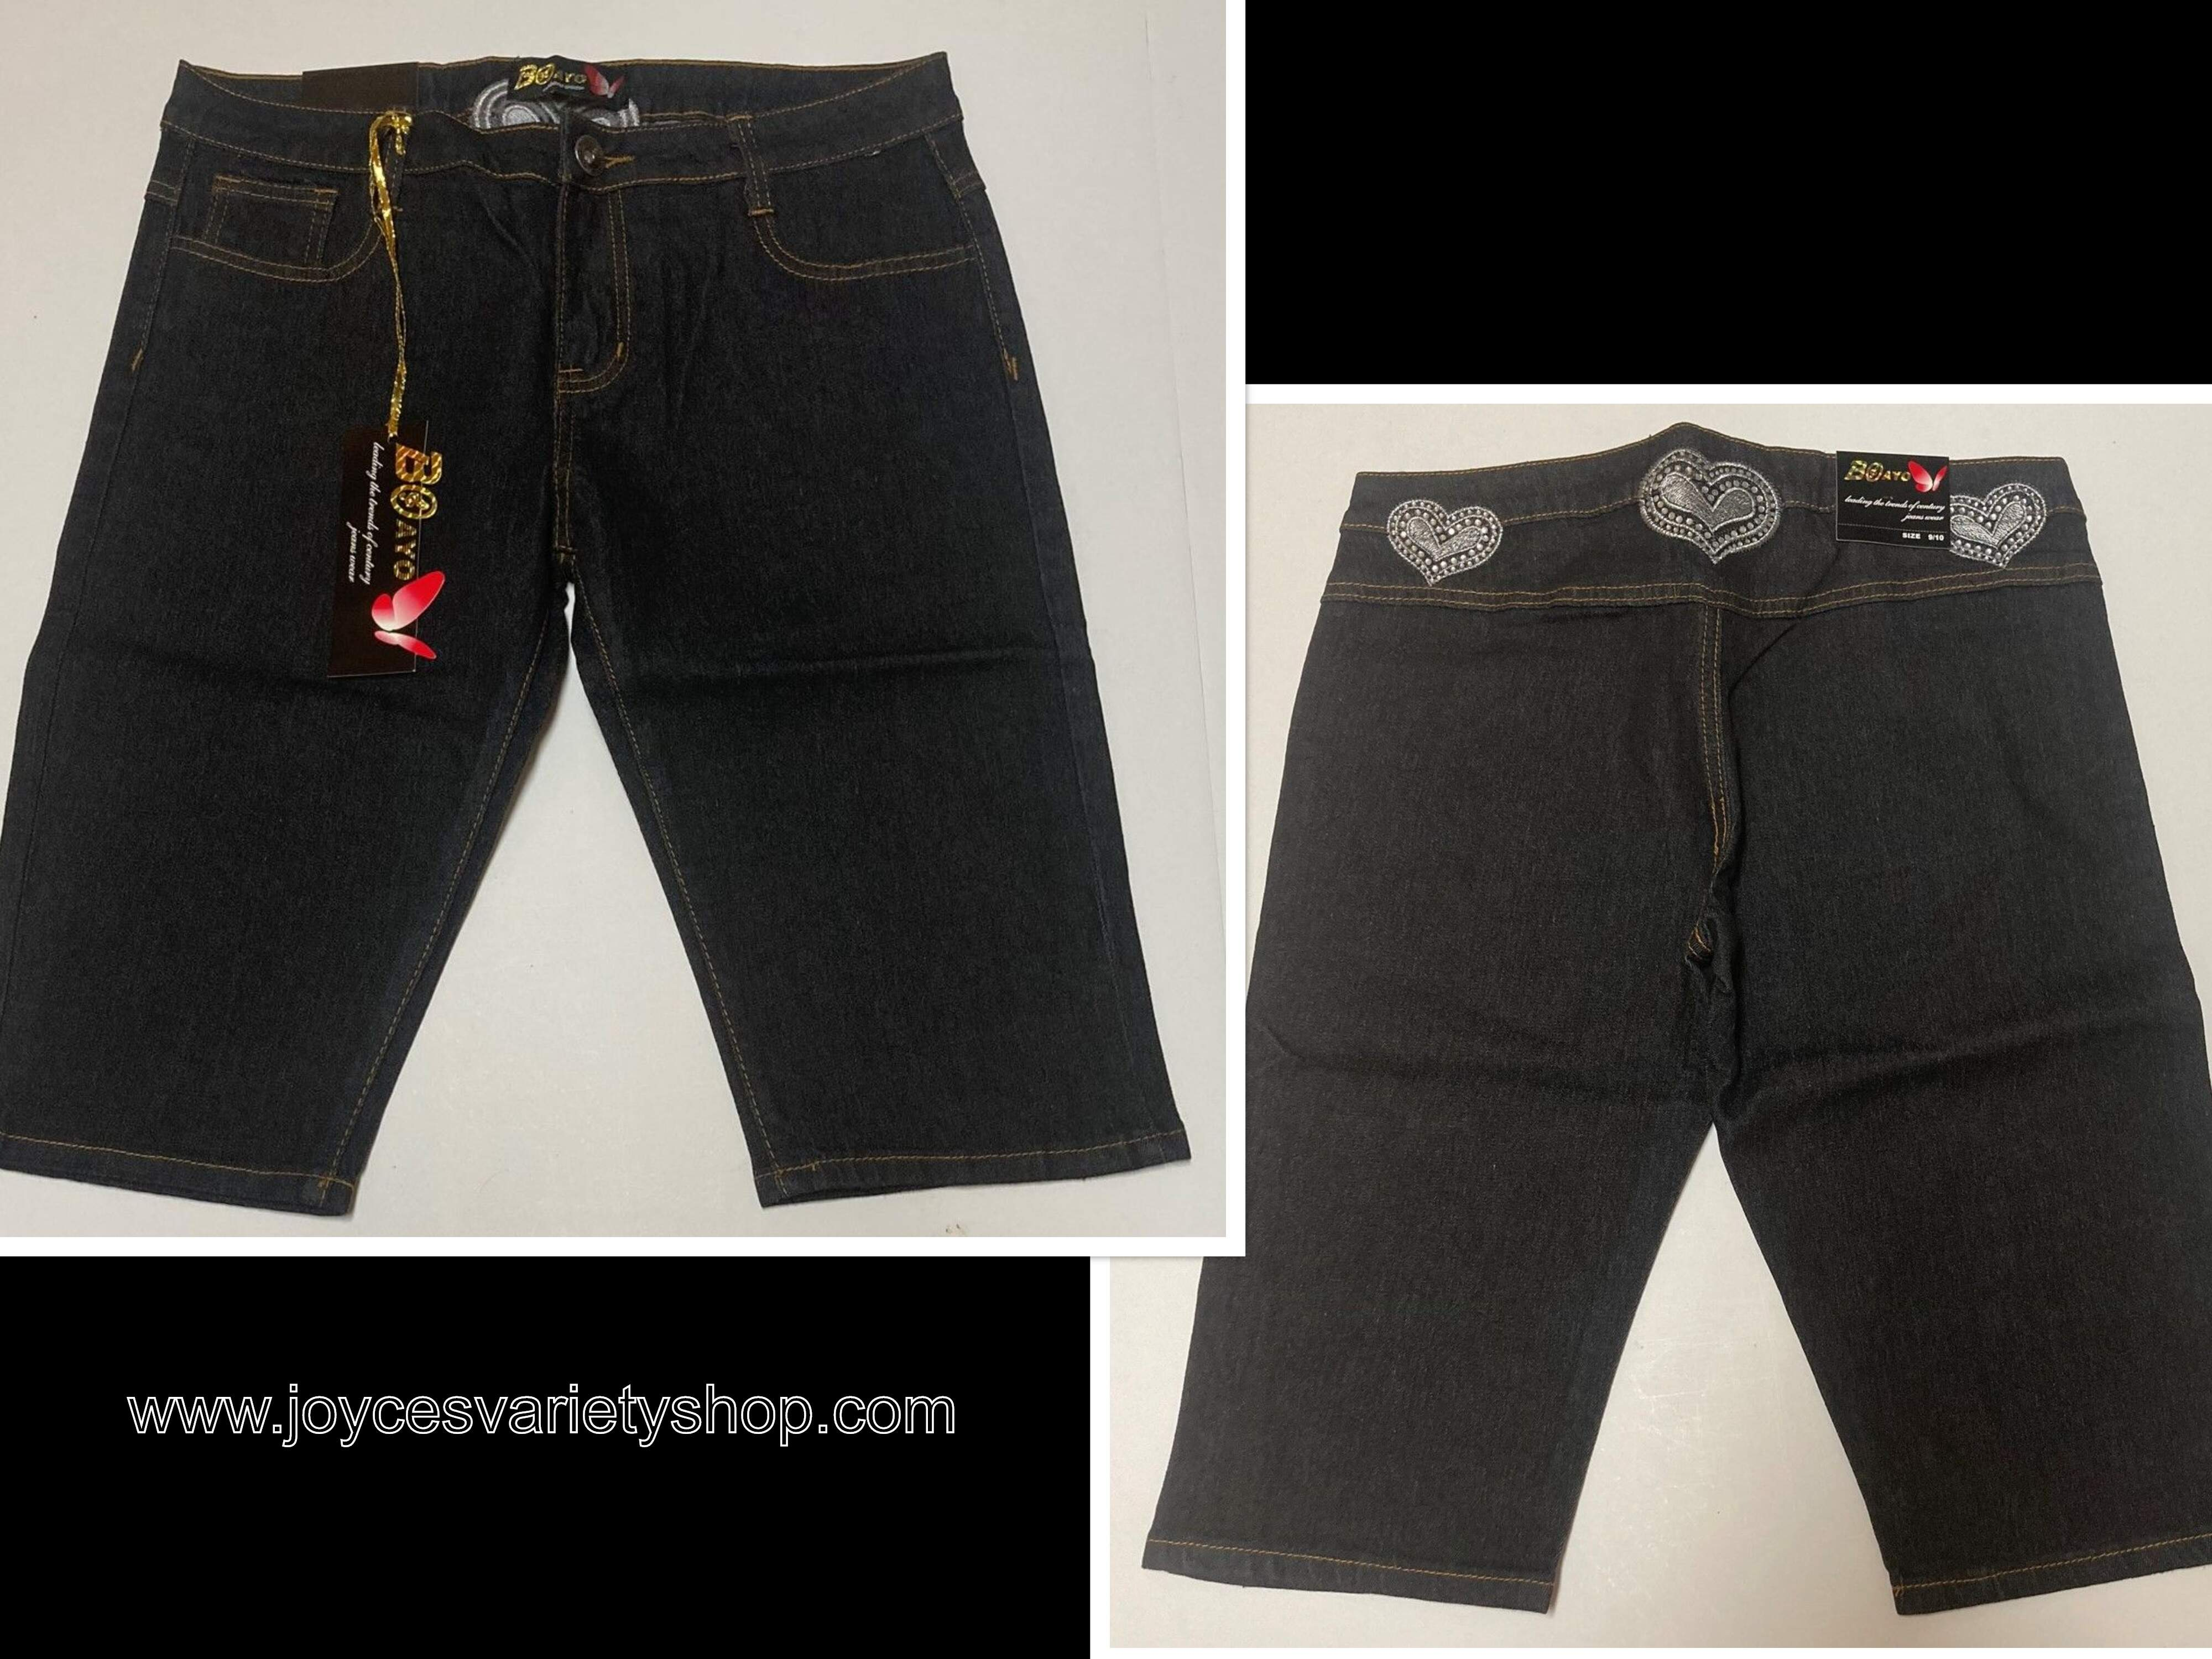 Jean Shorts Stretch Indigo Black Hearts Design Various Sz Boayo